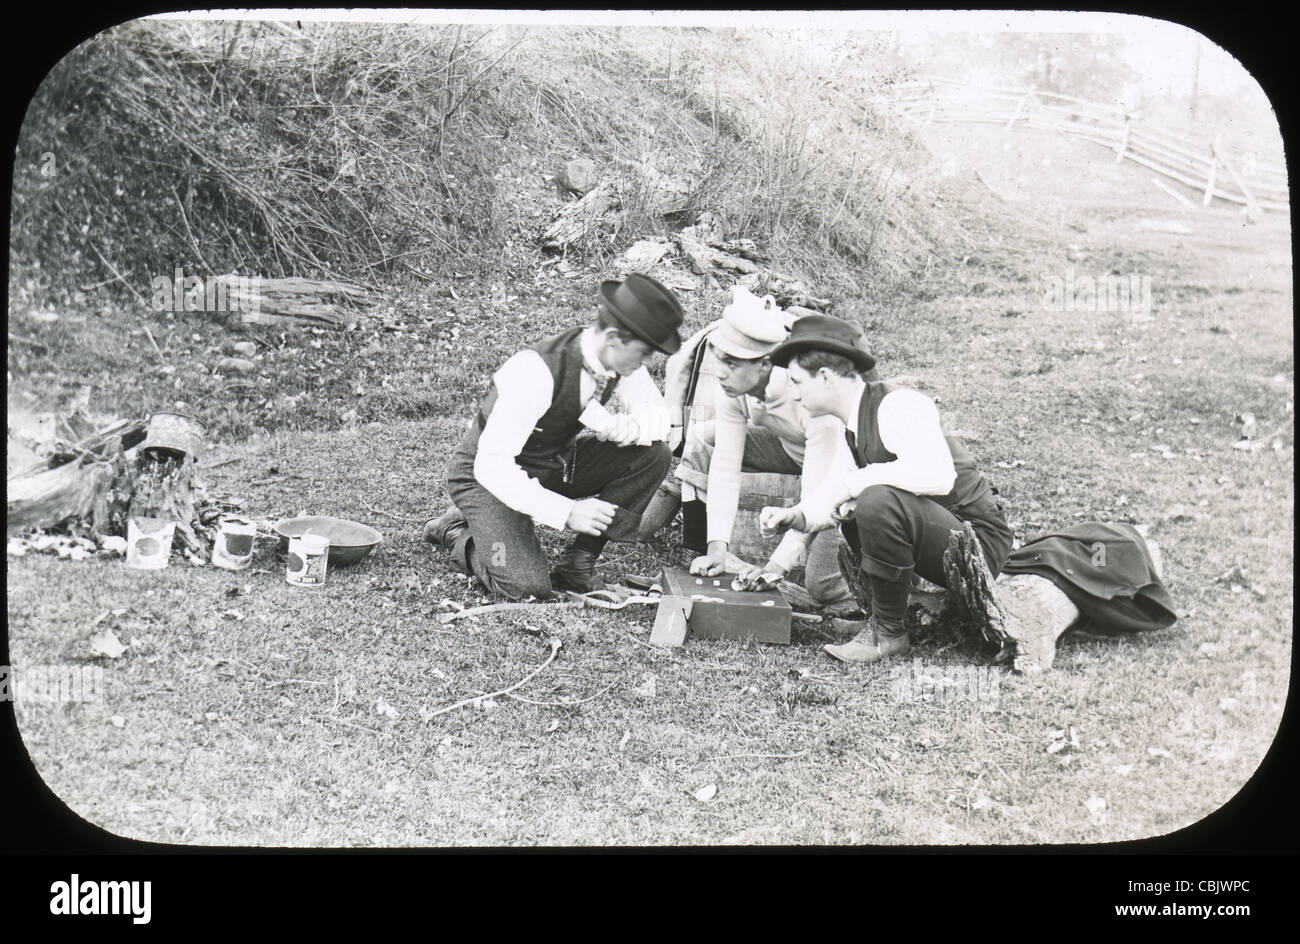 Circa 1910s antique photograph of three men wagering on some sort of dice game. - Stock Image